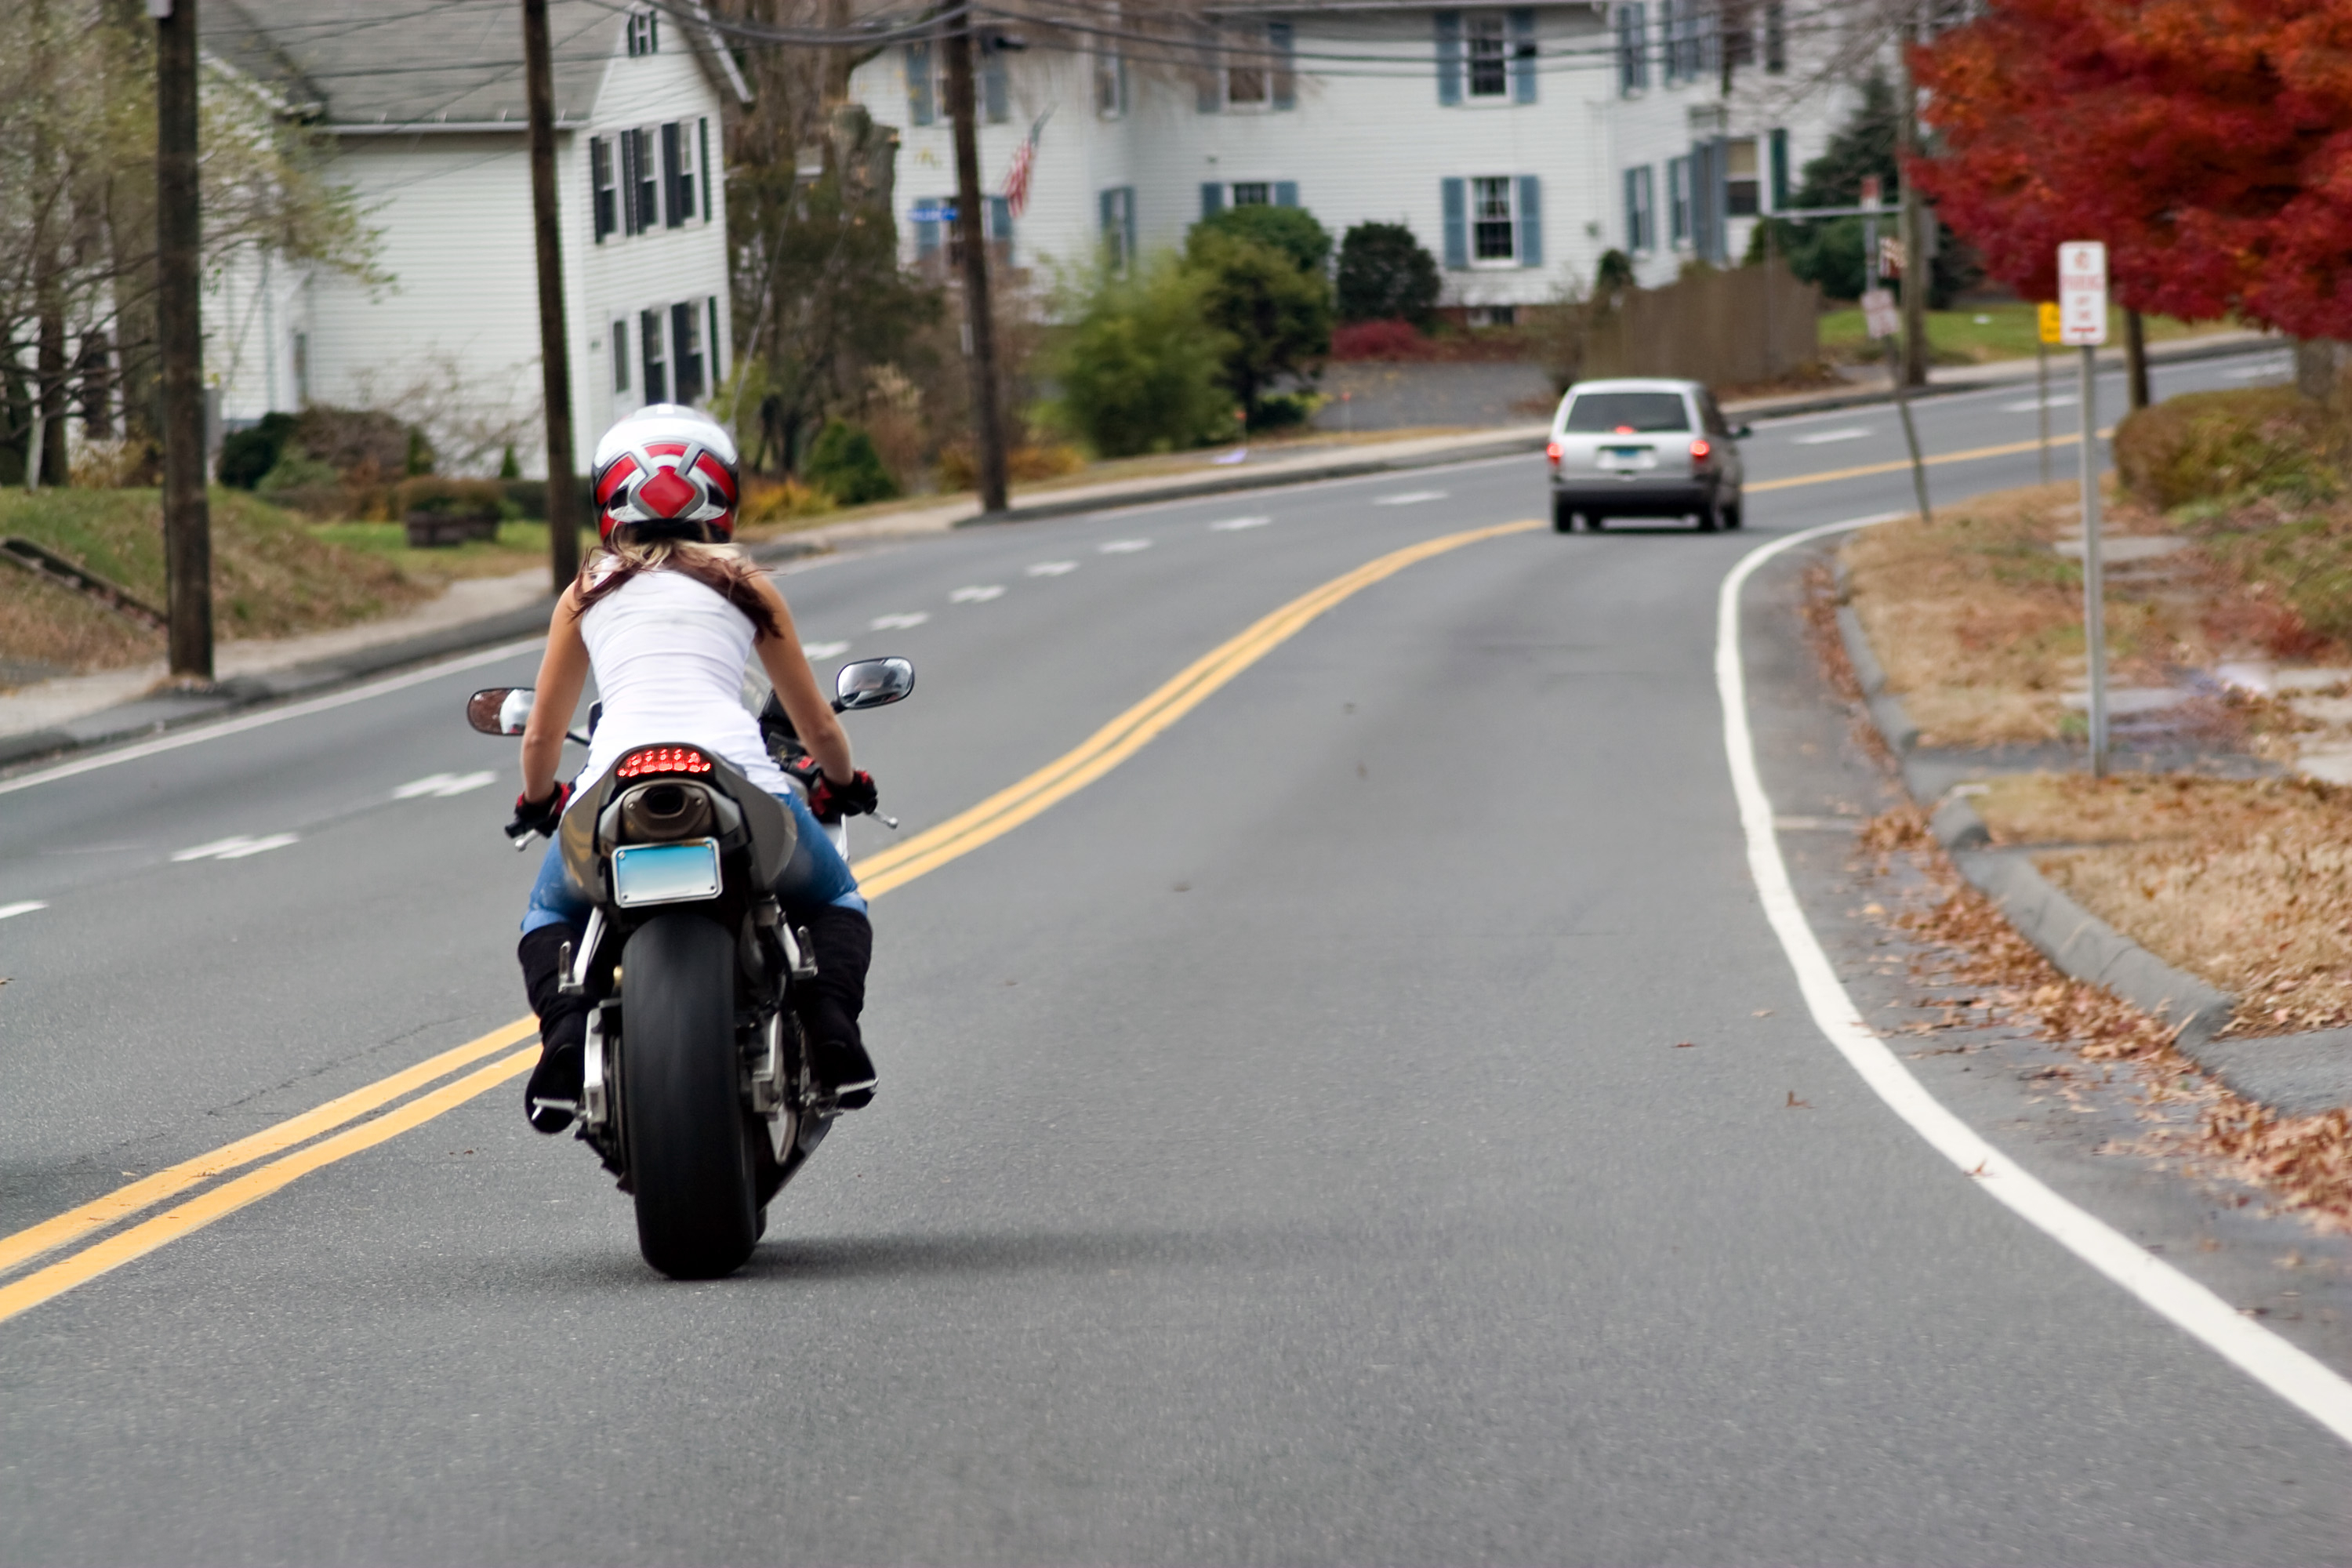 A Young Woman on a Motorcycle Maintains a Safe Following Distance with the Car Ahead